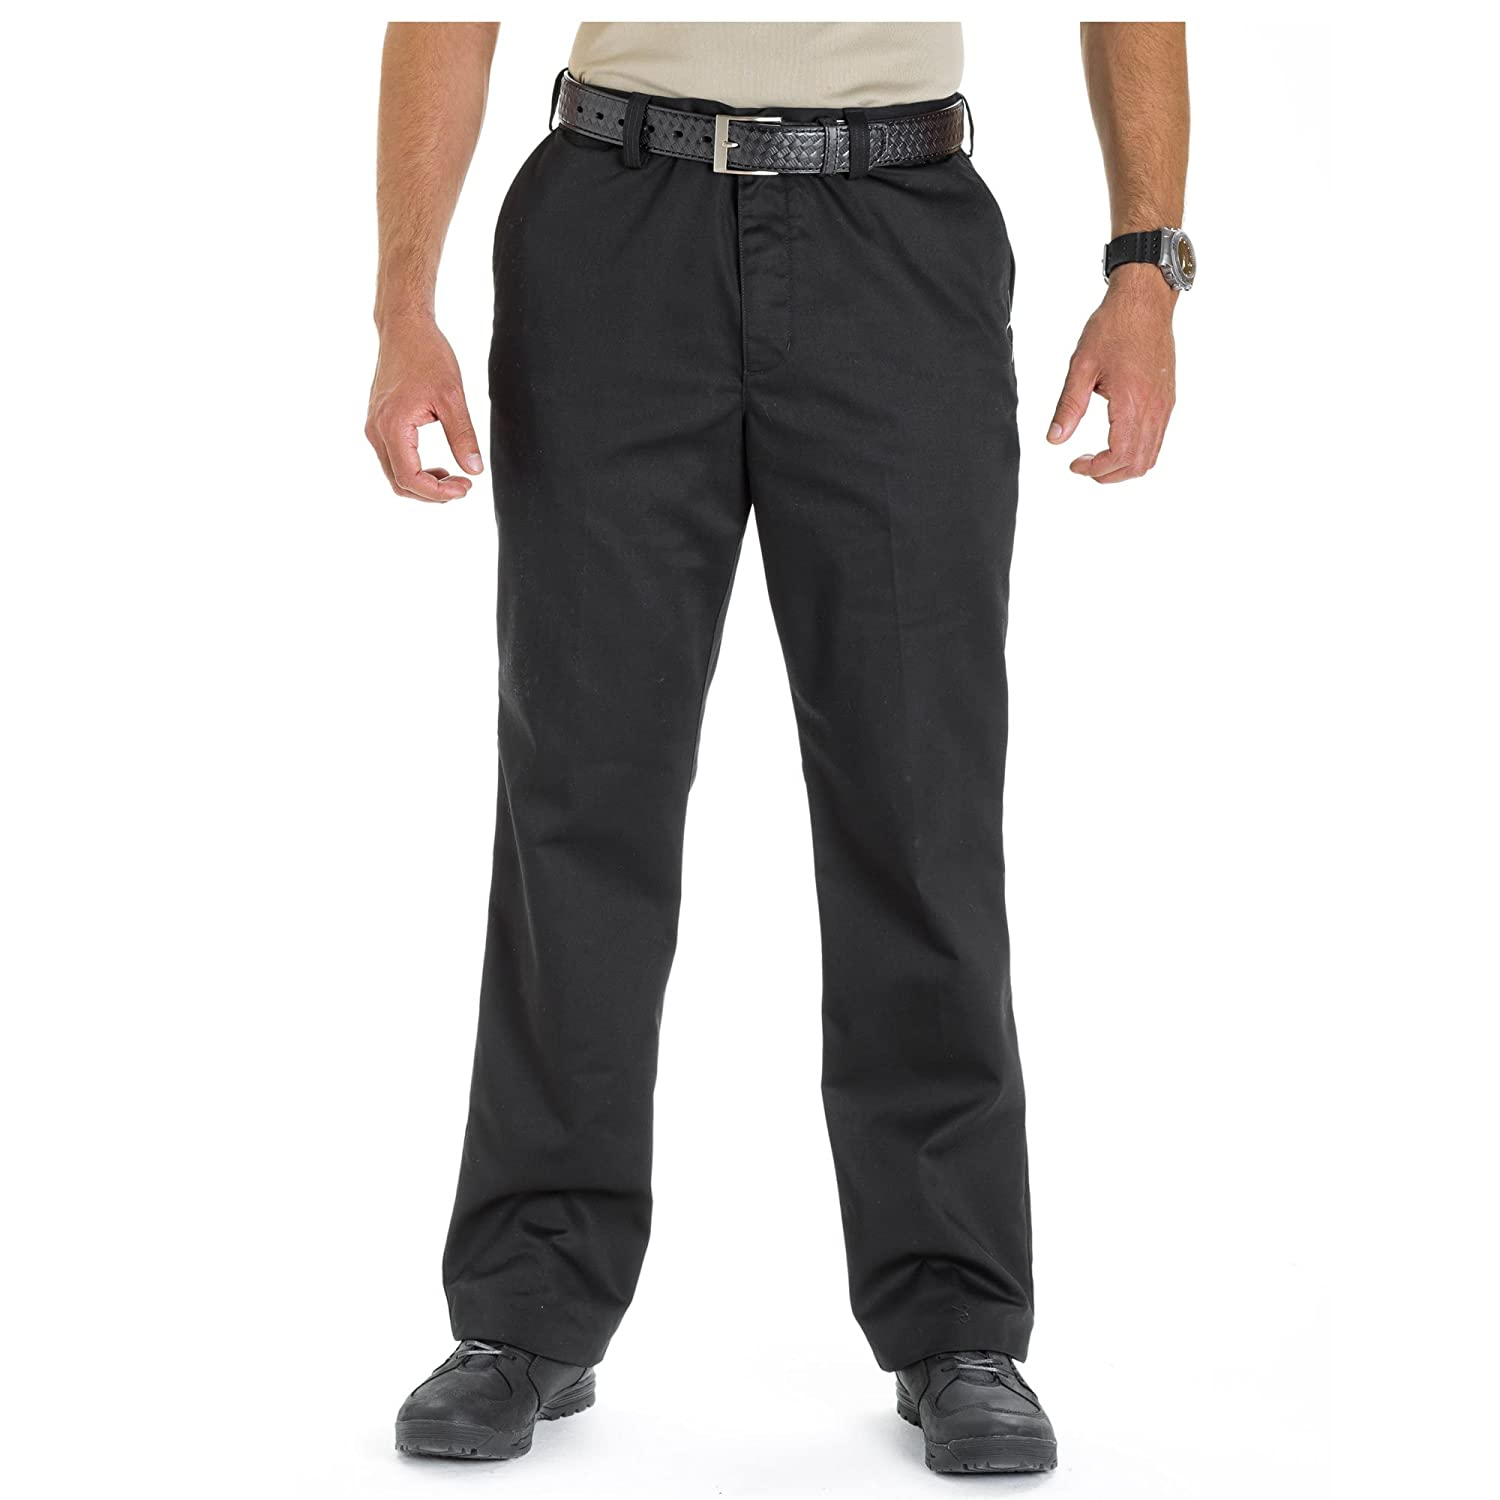 5.11 Tactical 74332_055 Covert Herren Hose